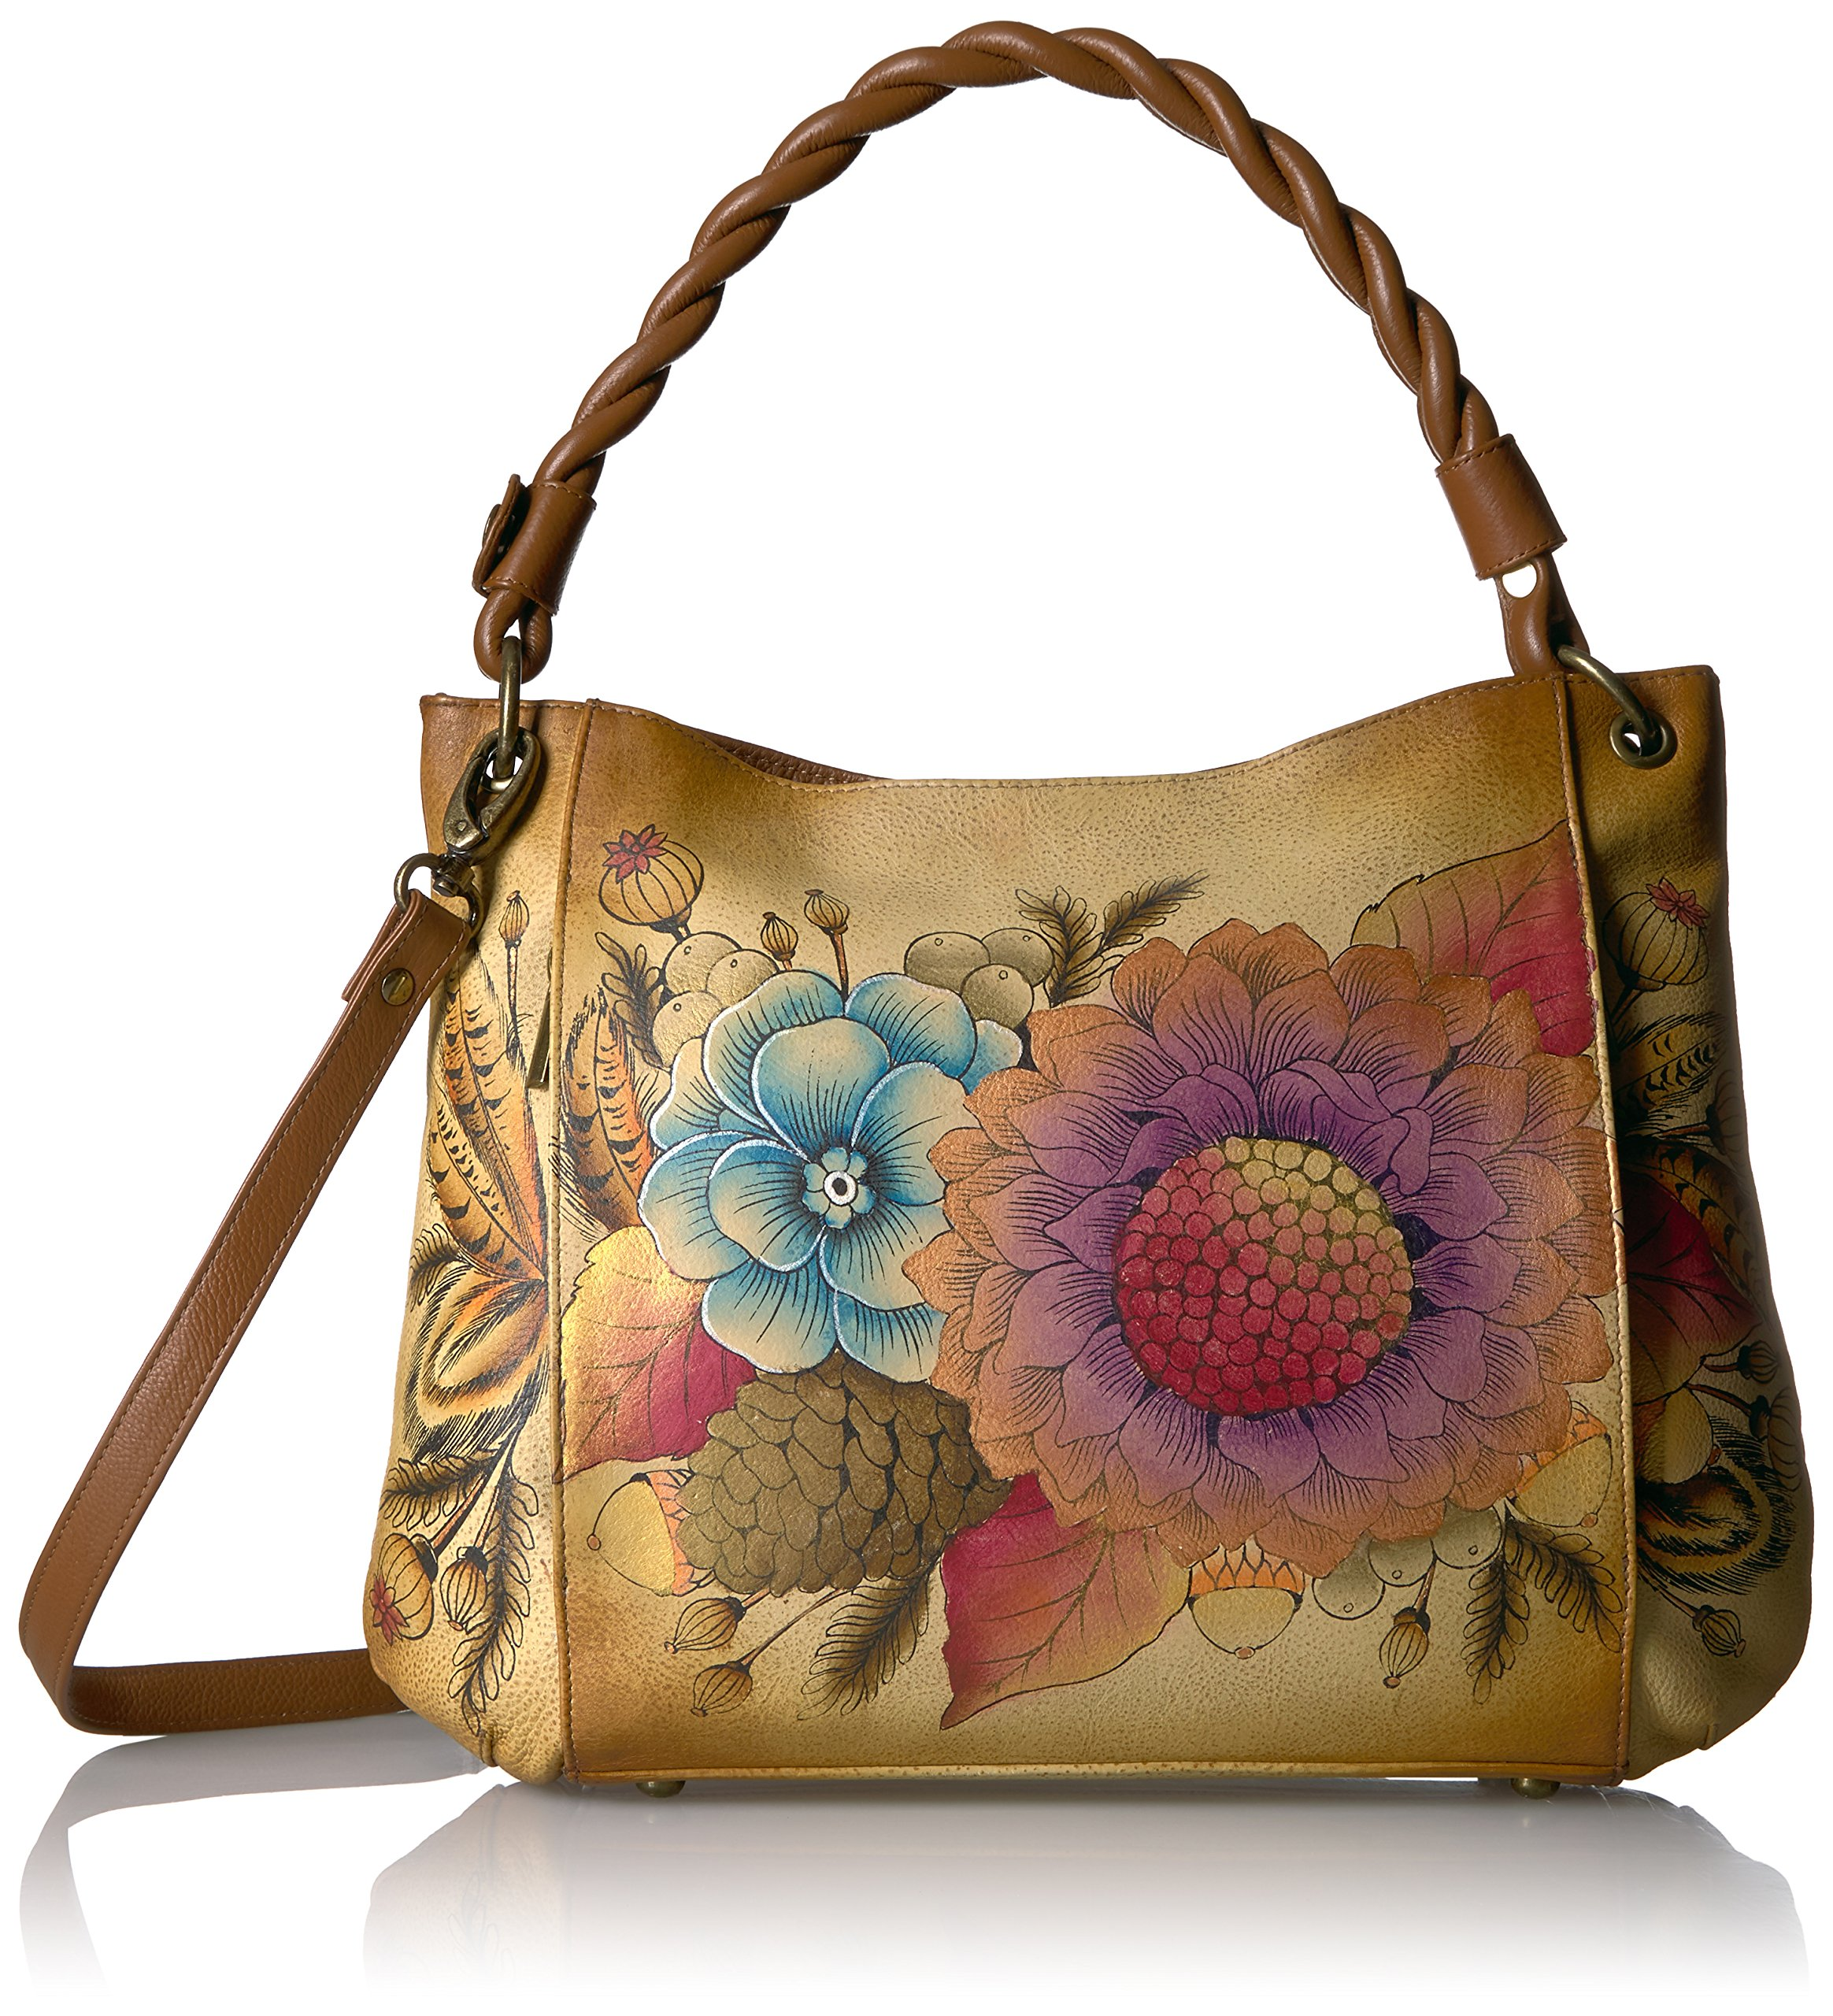 Anna by Anuschka Handpainted Leather Women's Bag, Rustic Bouquet